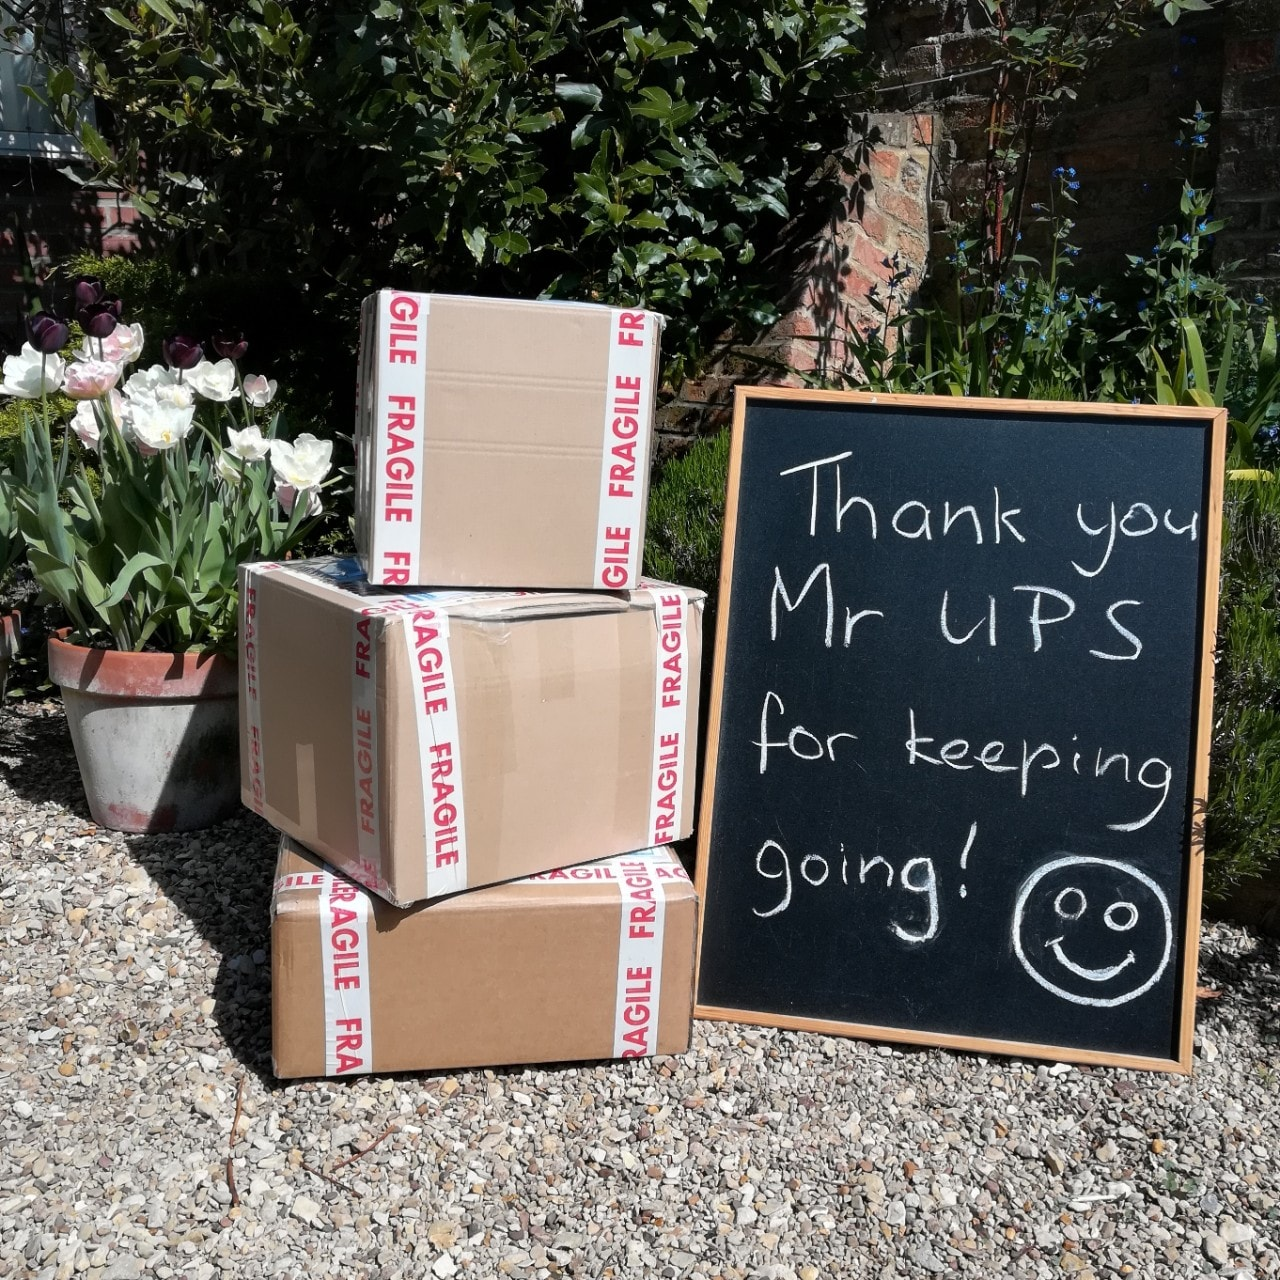 image of boxes and a chalkboard that says 'Thank you Mr. UPS for keeping going'